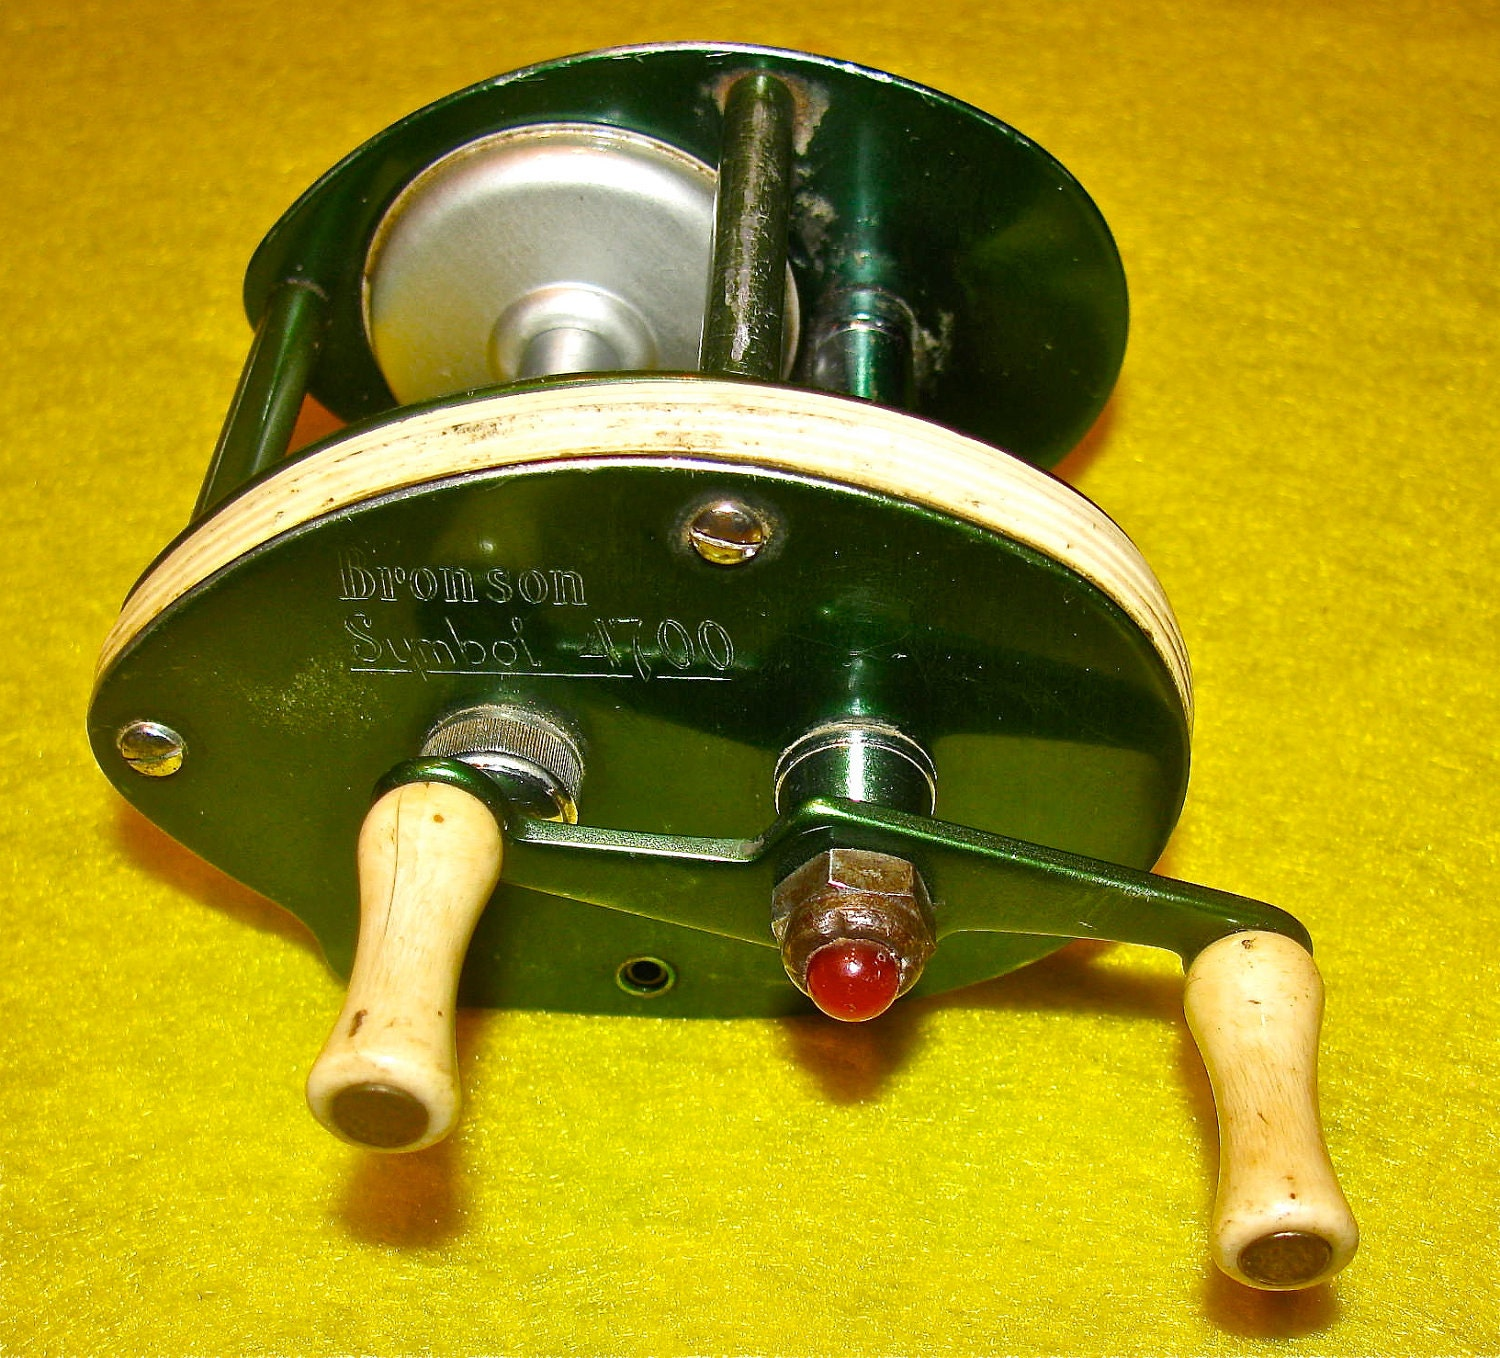 Vintage bronson symbol 4700 fishing reel for Vintage fishing reels for sale